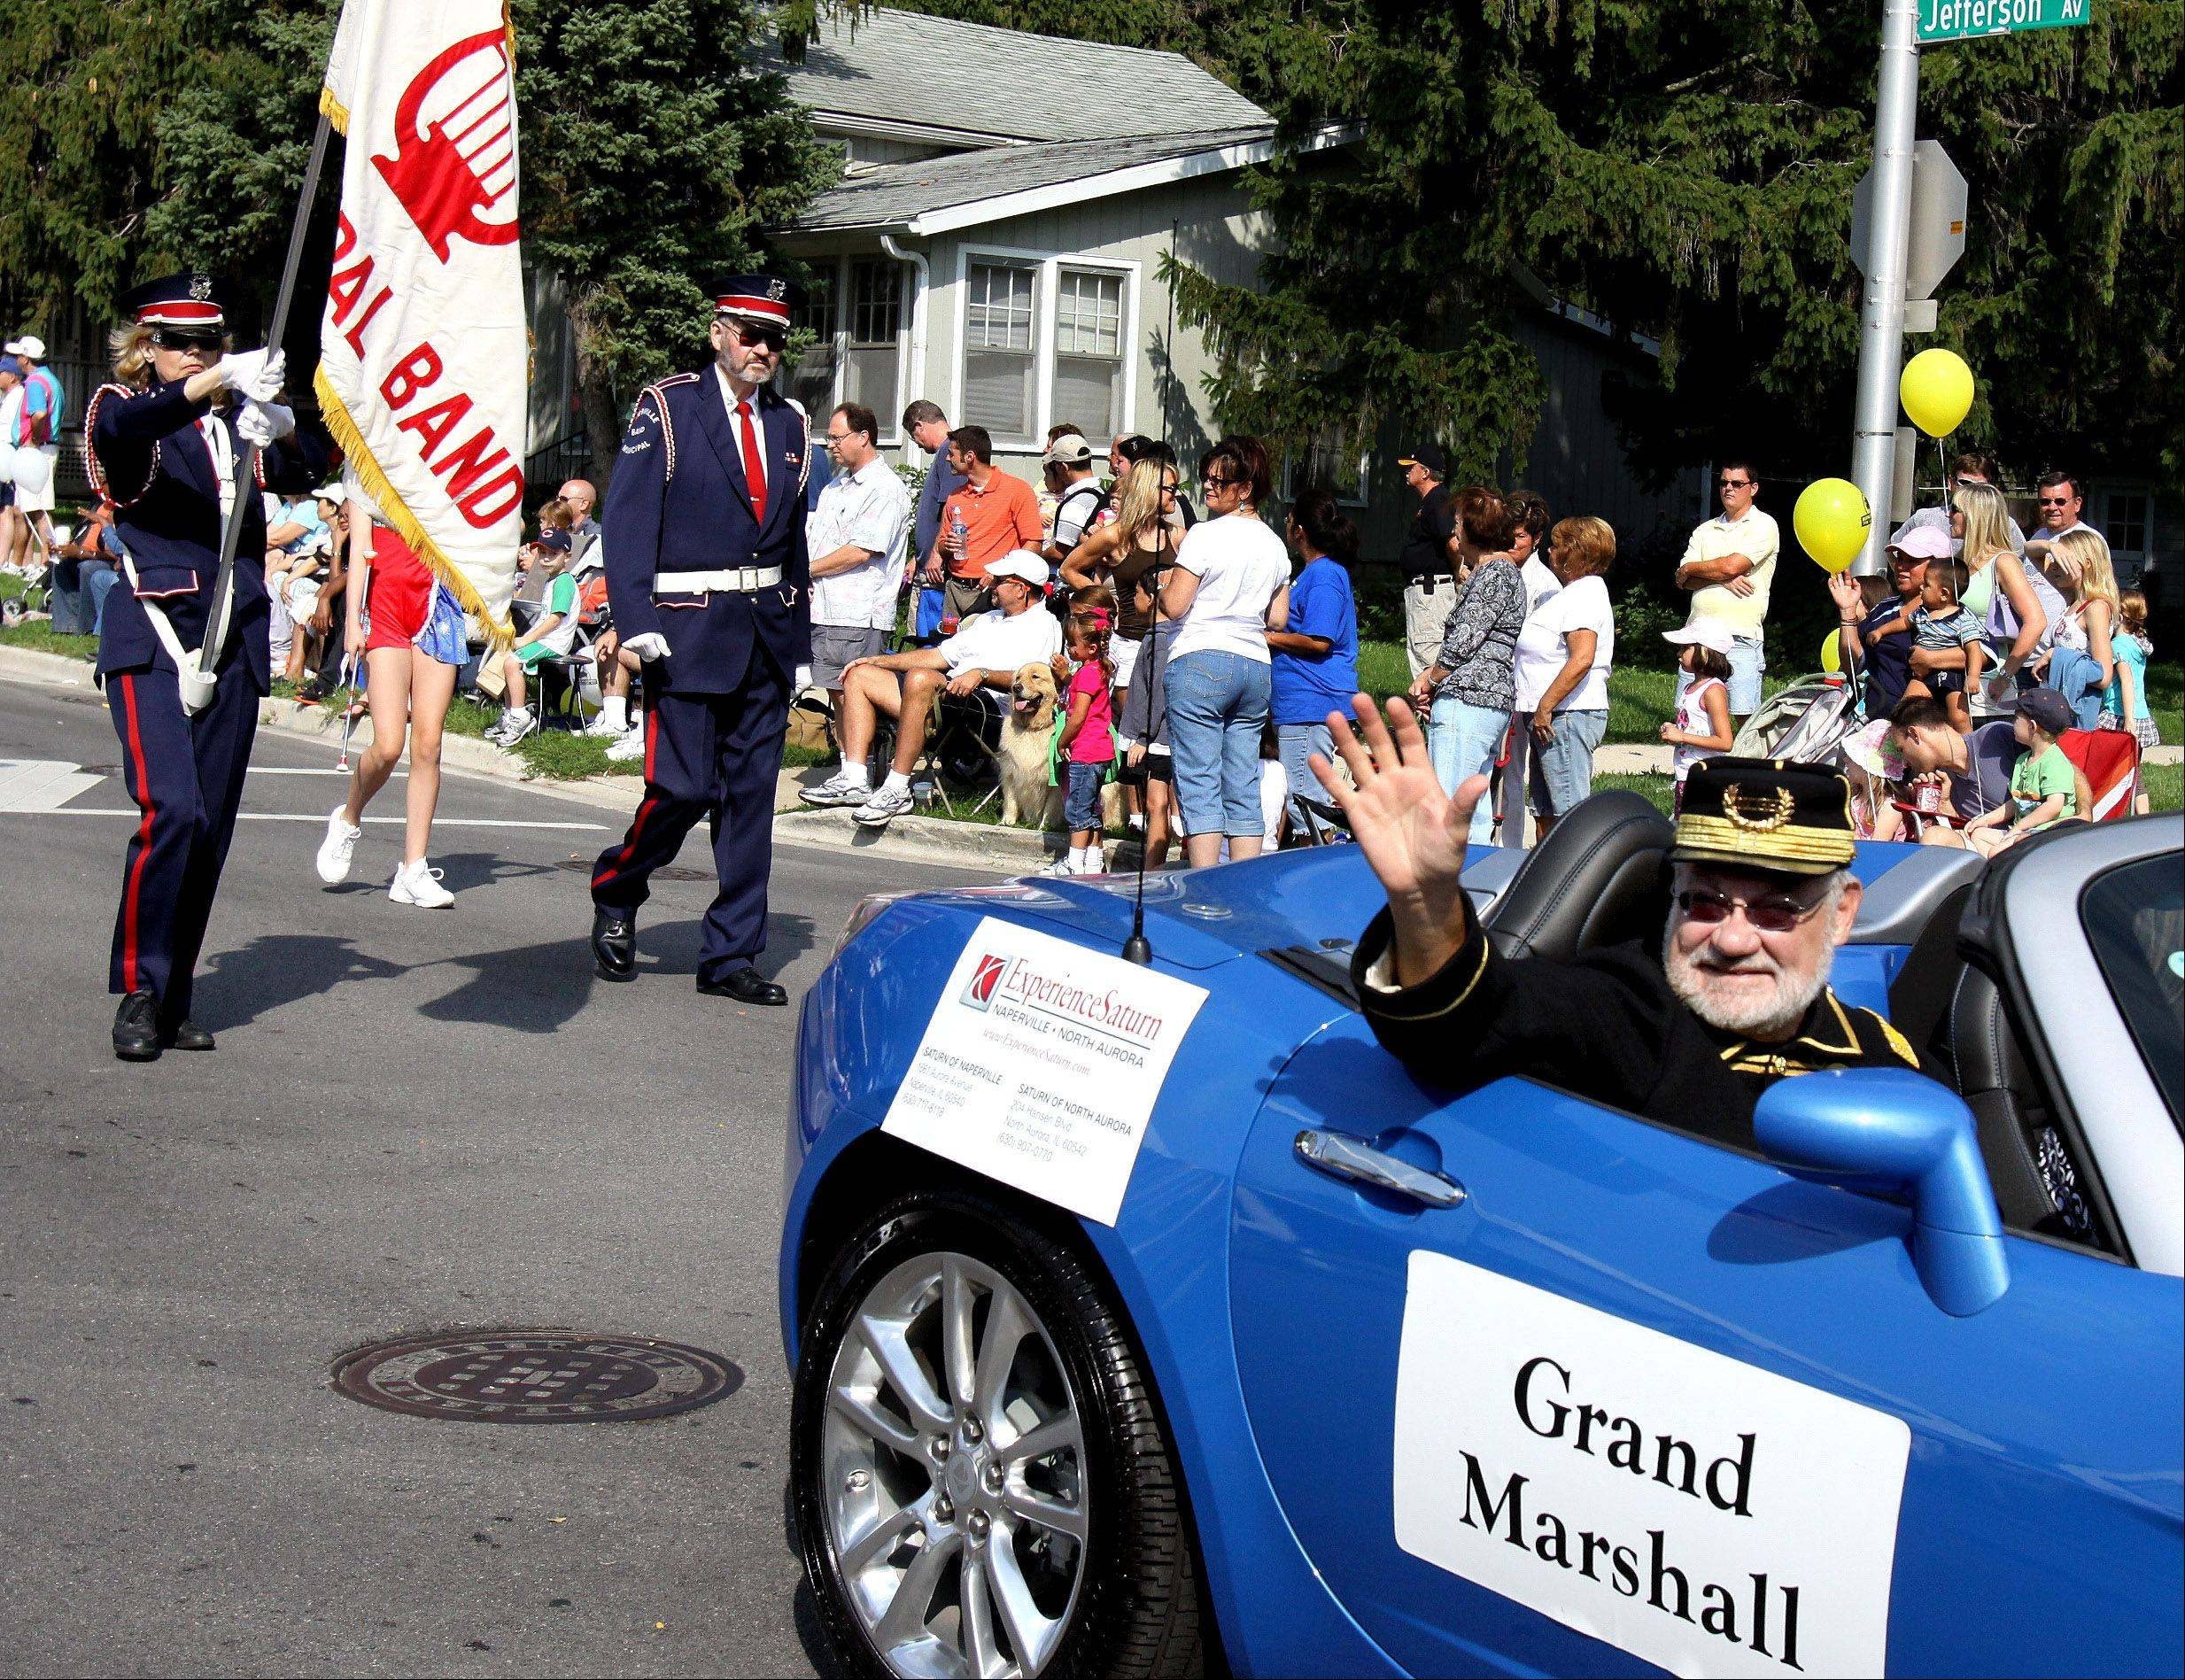 Ron Keller, director of the Naperville Municipal Band, serves as grand marshal in a past Labor Day Parade. This year's parade, at 10 a.m. Monday, Sept. 2, will honor the Naperville Area Chamber of Commerce as grand marshal during the chamber's 100th anniversary year.